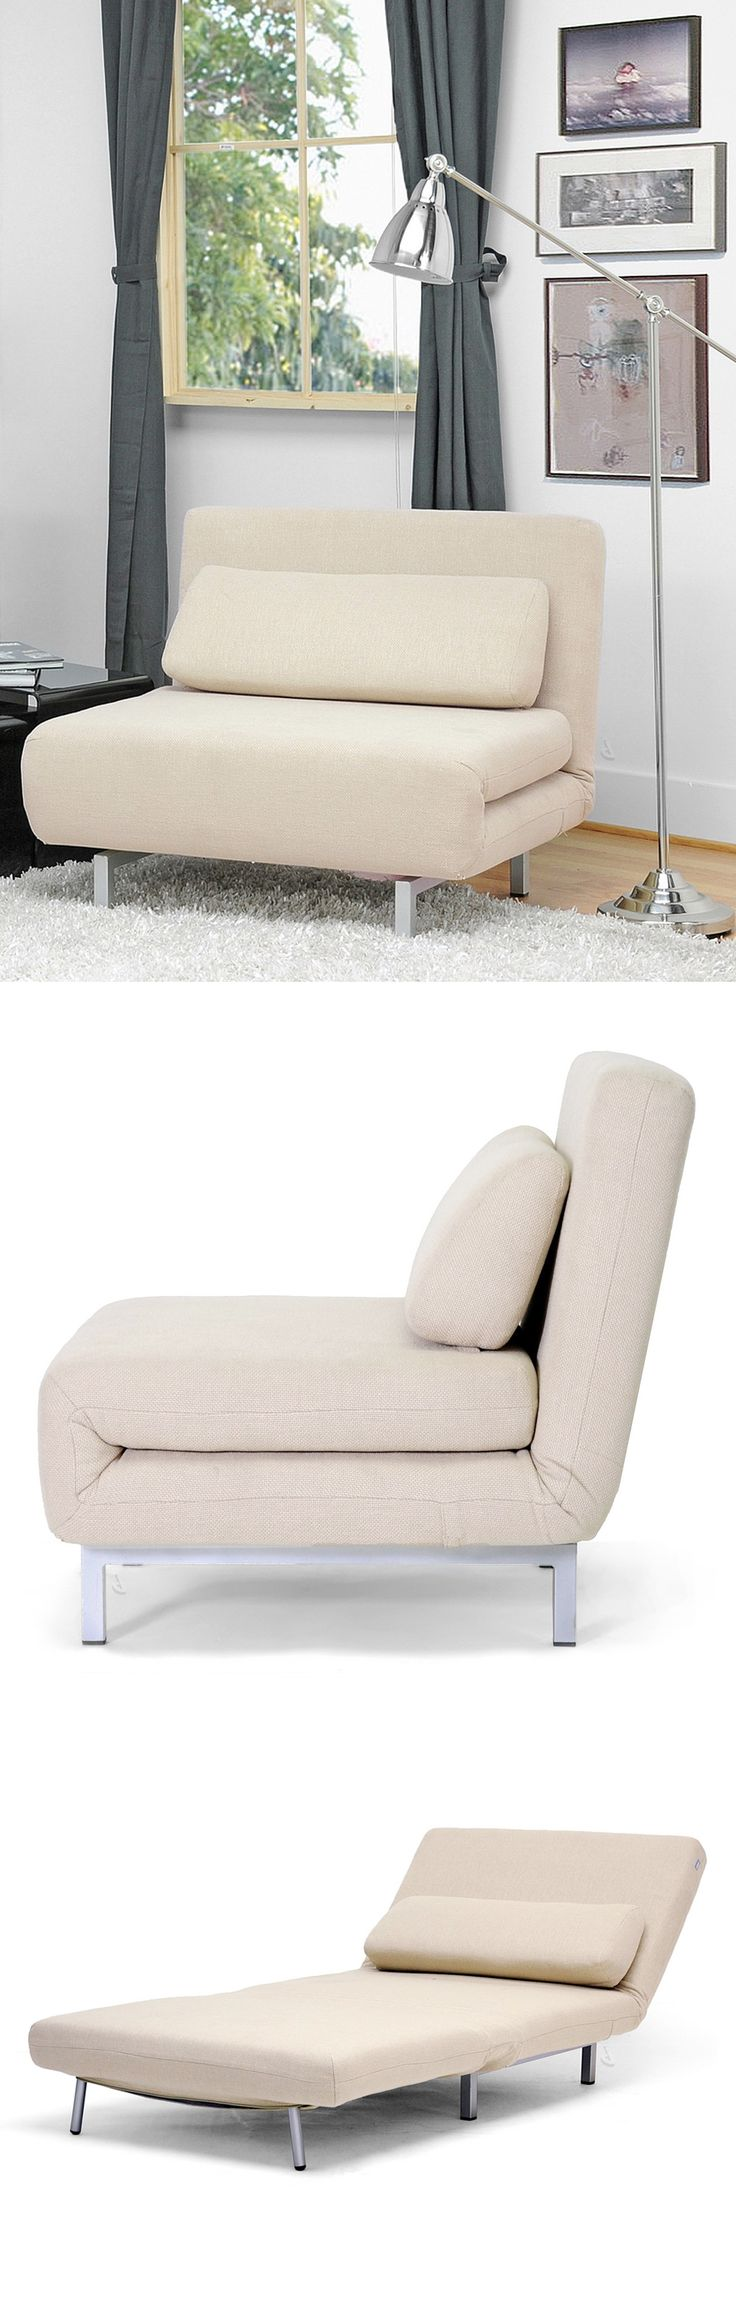 Fold out chair bed for adults - Comfy Chair Becomes A Twin Mattress Sleeper In Seconds Furniture_design